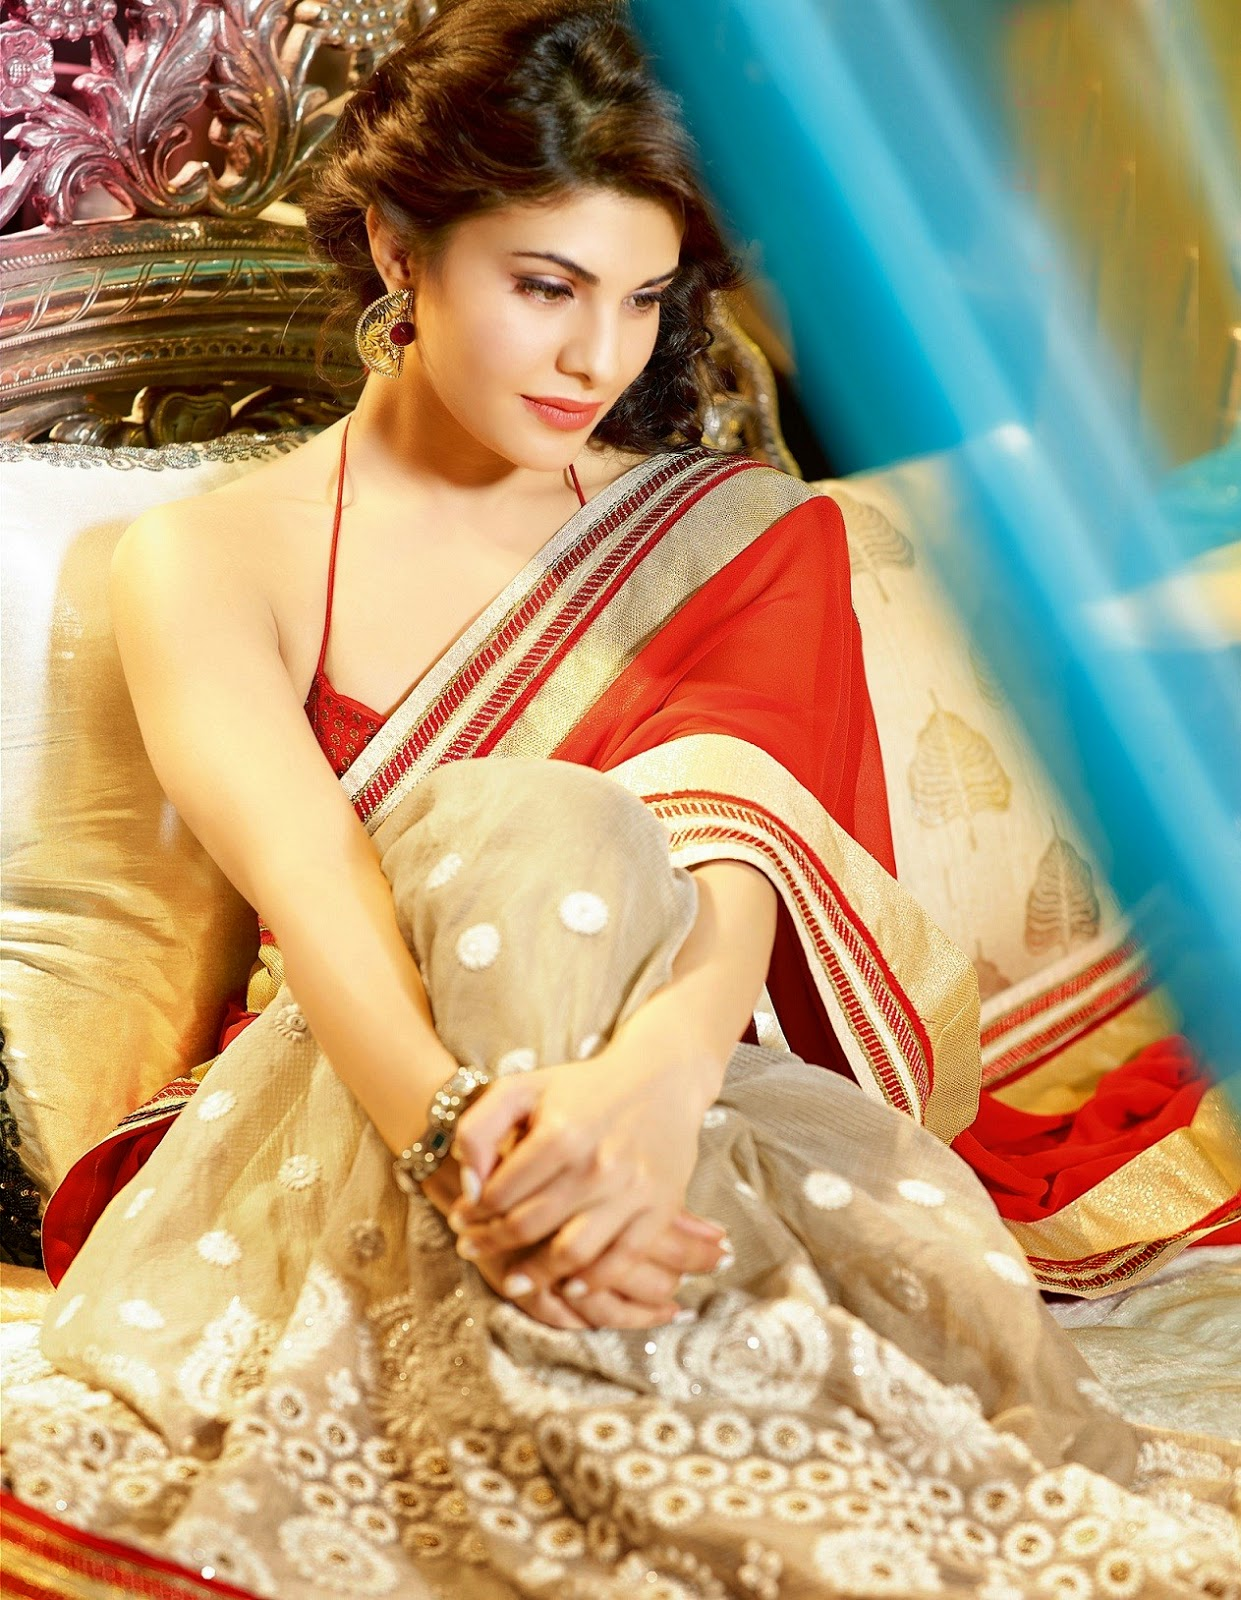 jacqueline fernandez hd wallpapers free download -i- | wallpaper